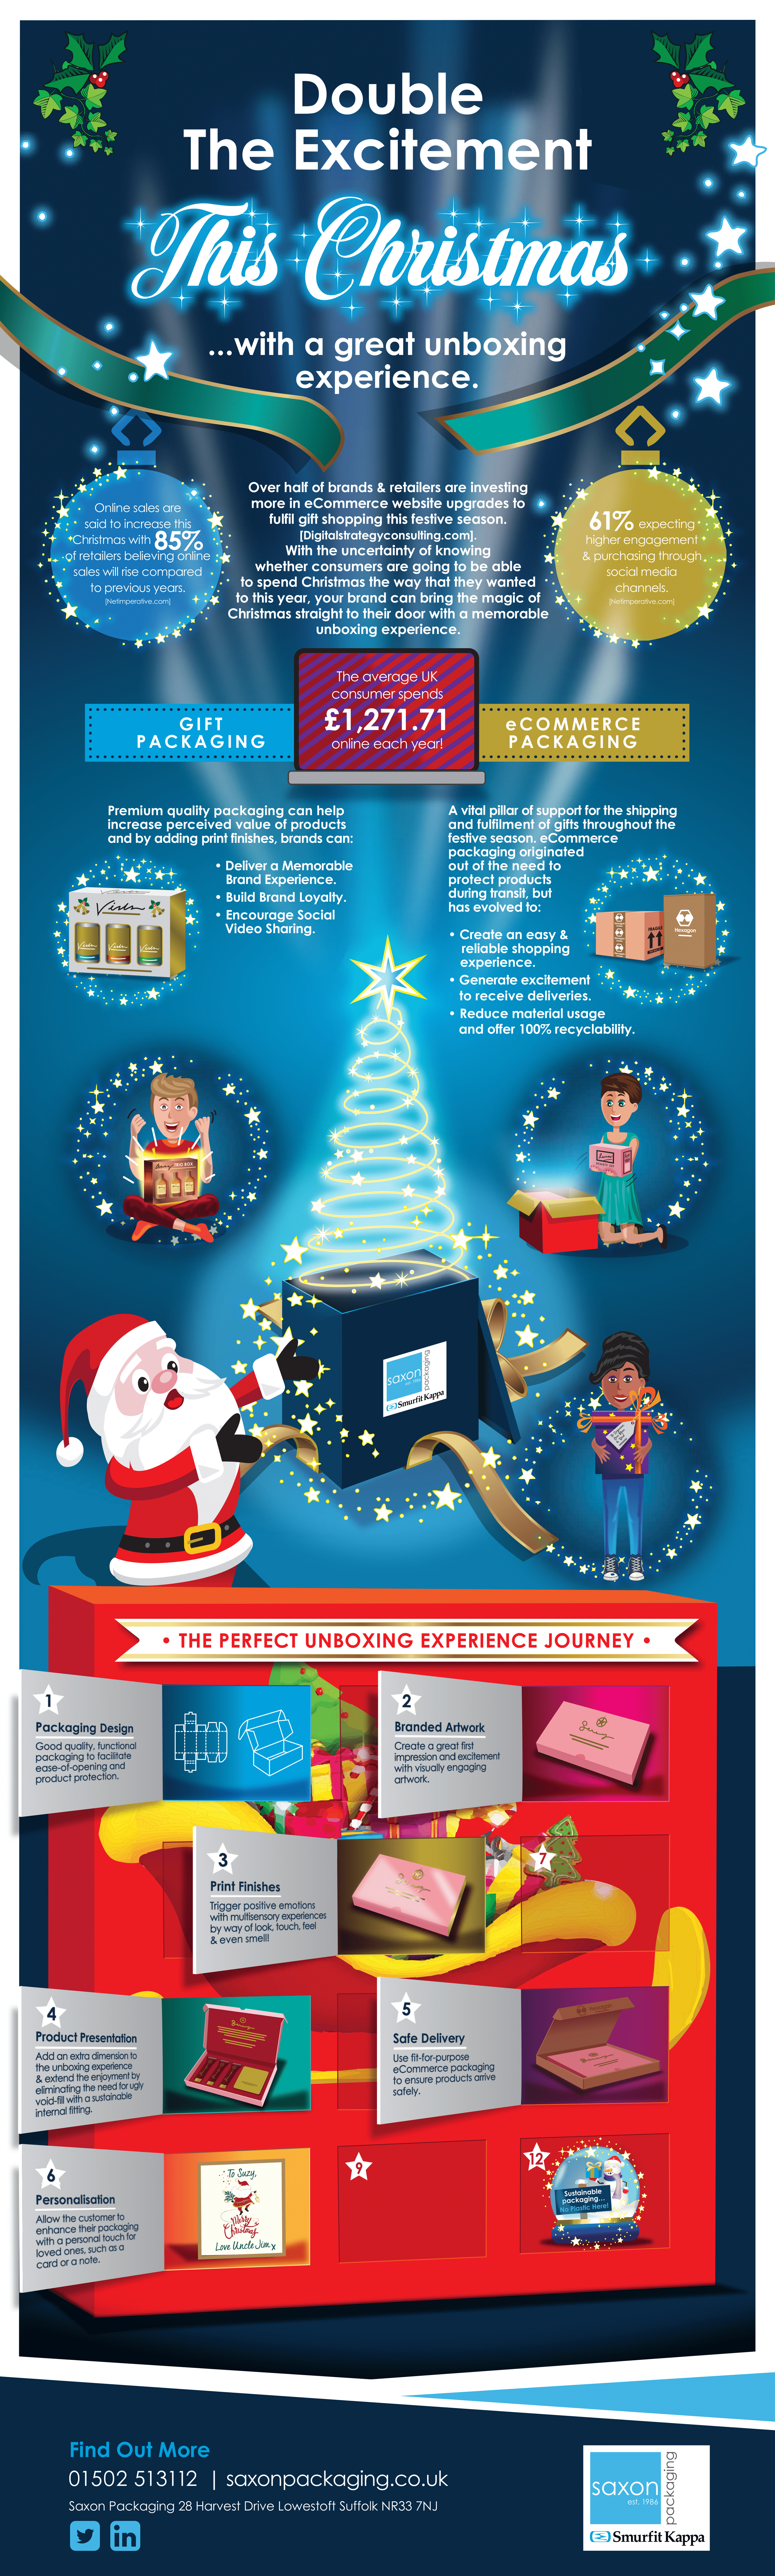 Double The Excitement This Christmas With A Great Unboxing Experience | Christmas Infographic | Packaging | Saxon Packaging | Covid-19 Christmas | Xmas 2020